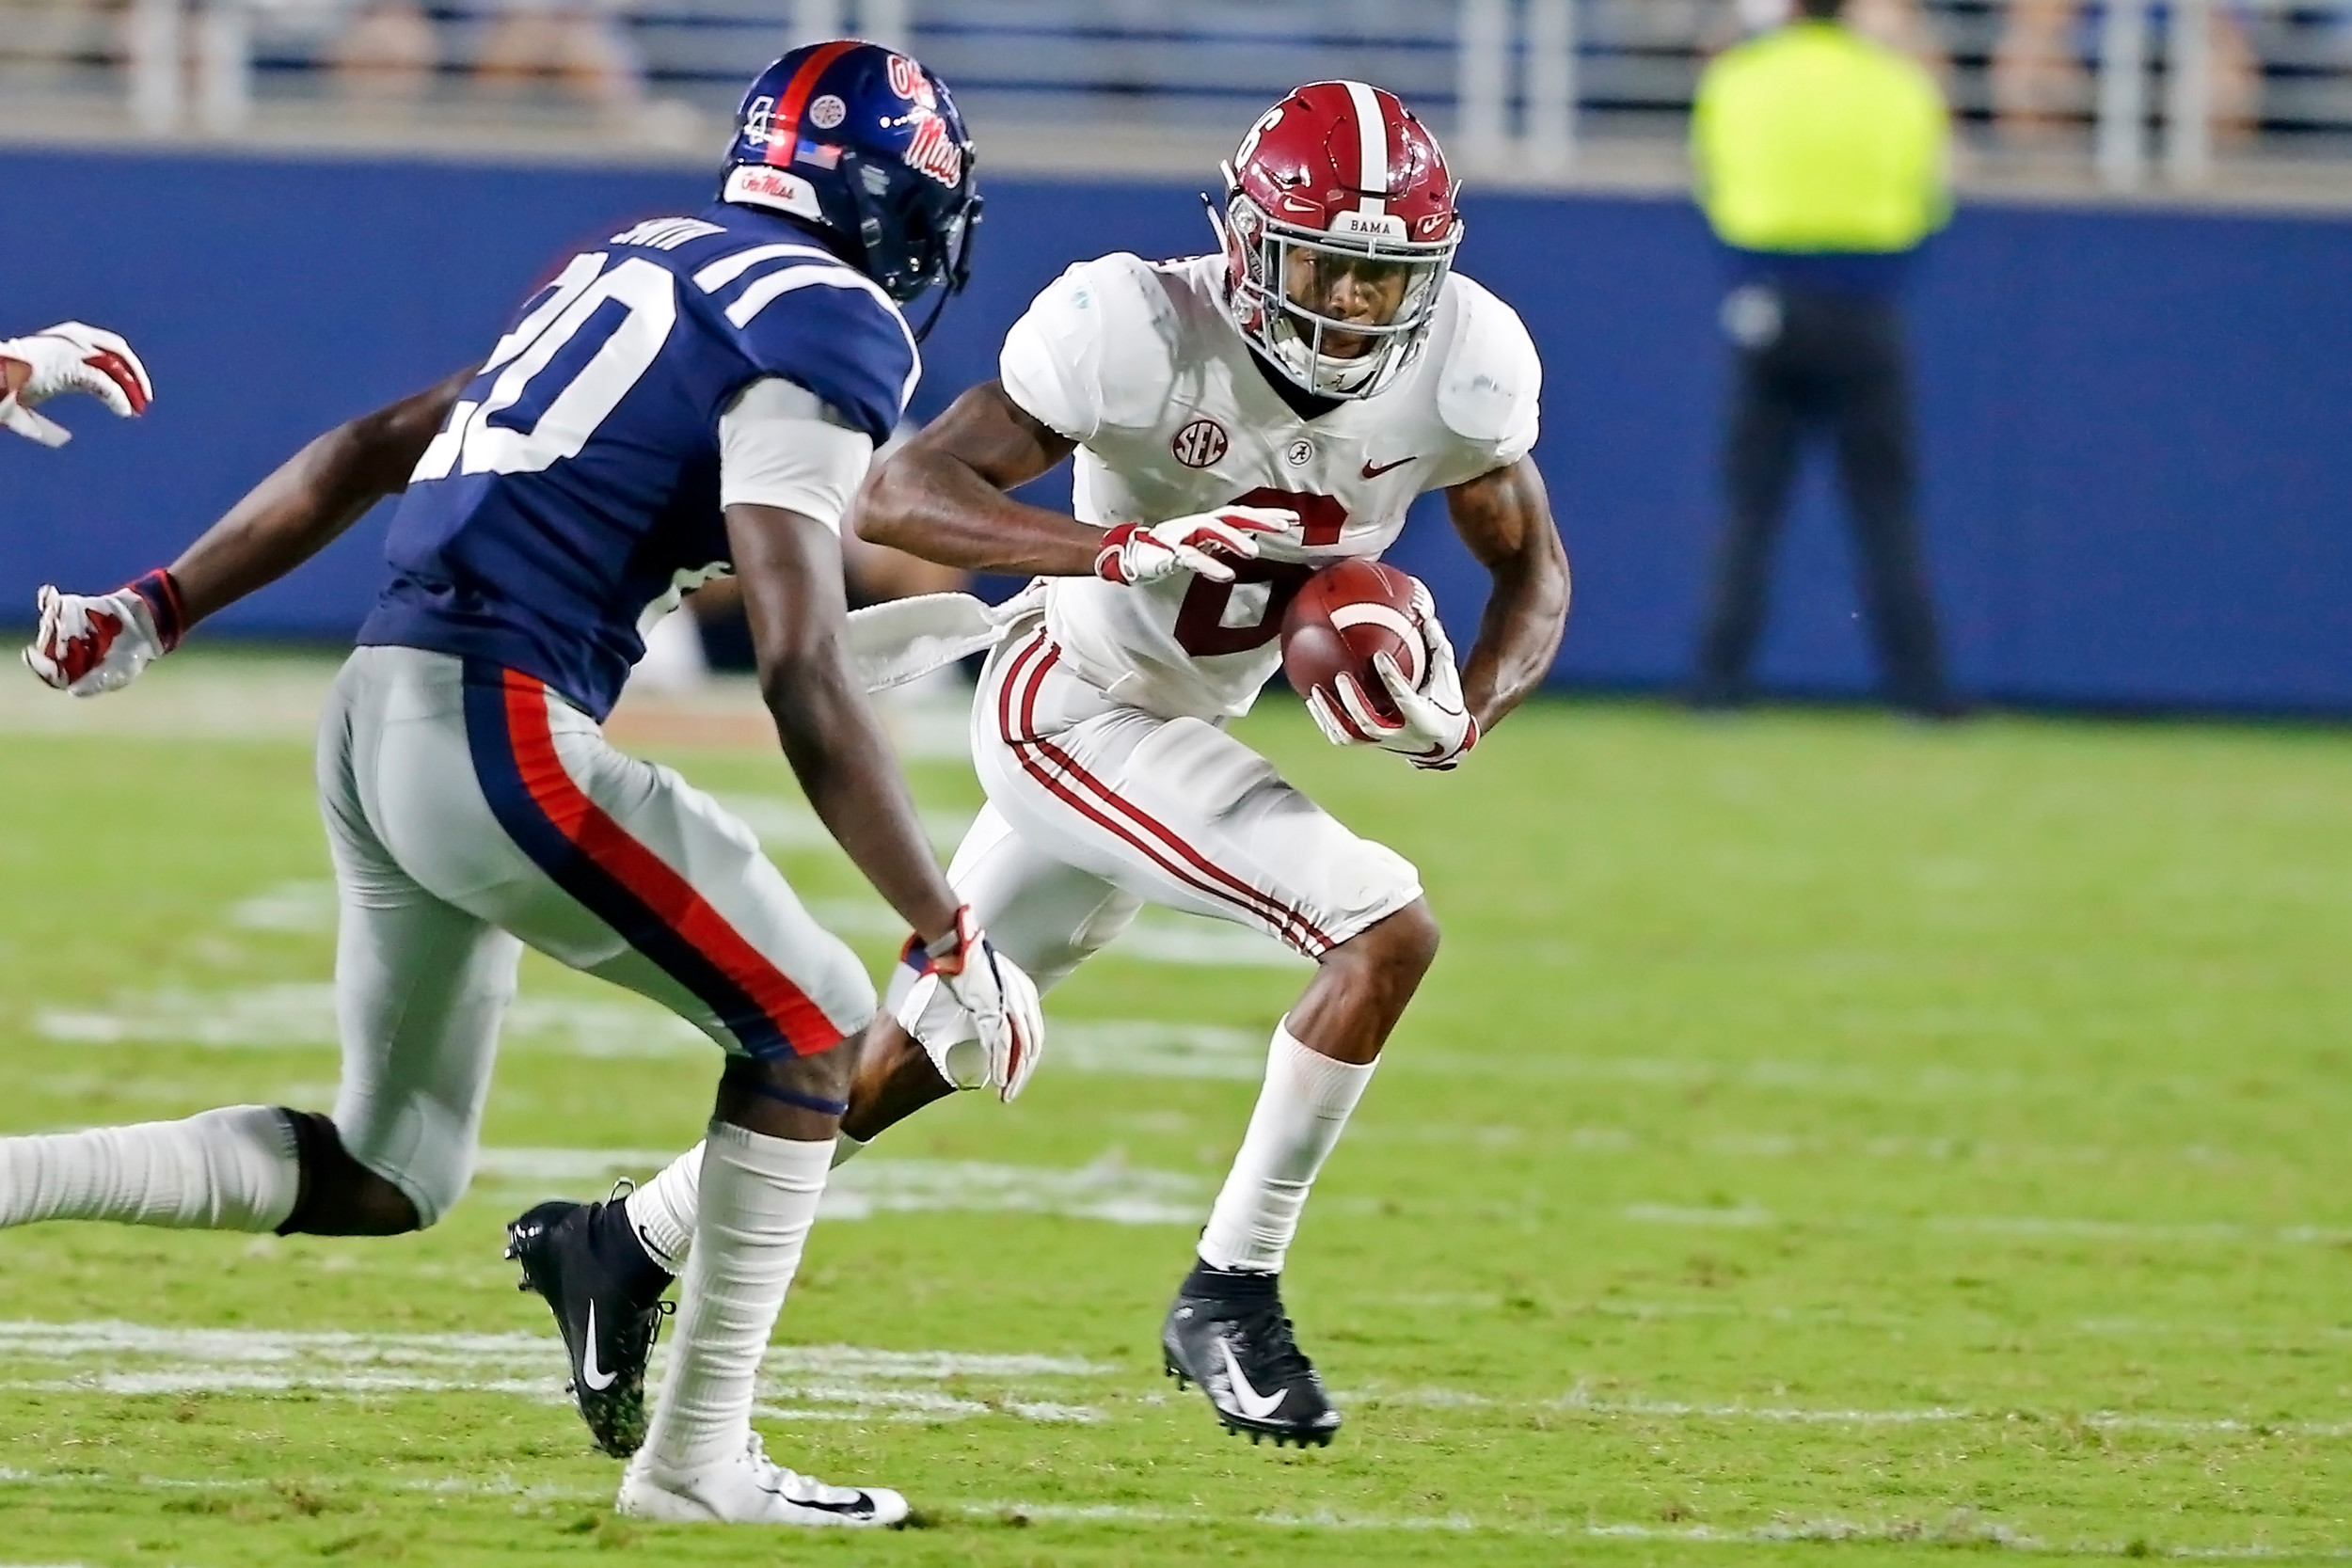 Alabama Crimson Tide wide receiver DeVonta Smith (6) runs after a reception during the game between the University of Alabama and Ole Miss at Vaught-Hemingway Stadium. Jason Clark / Daily Mountain Eagle